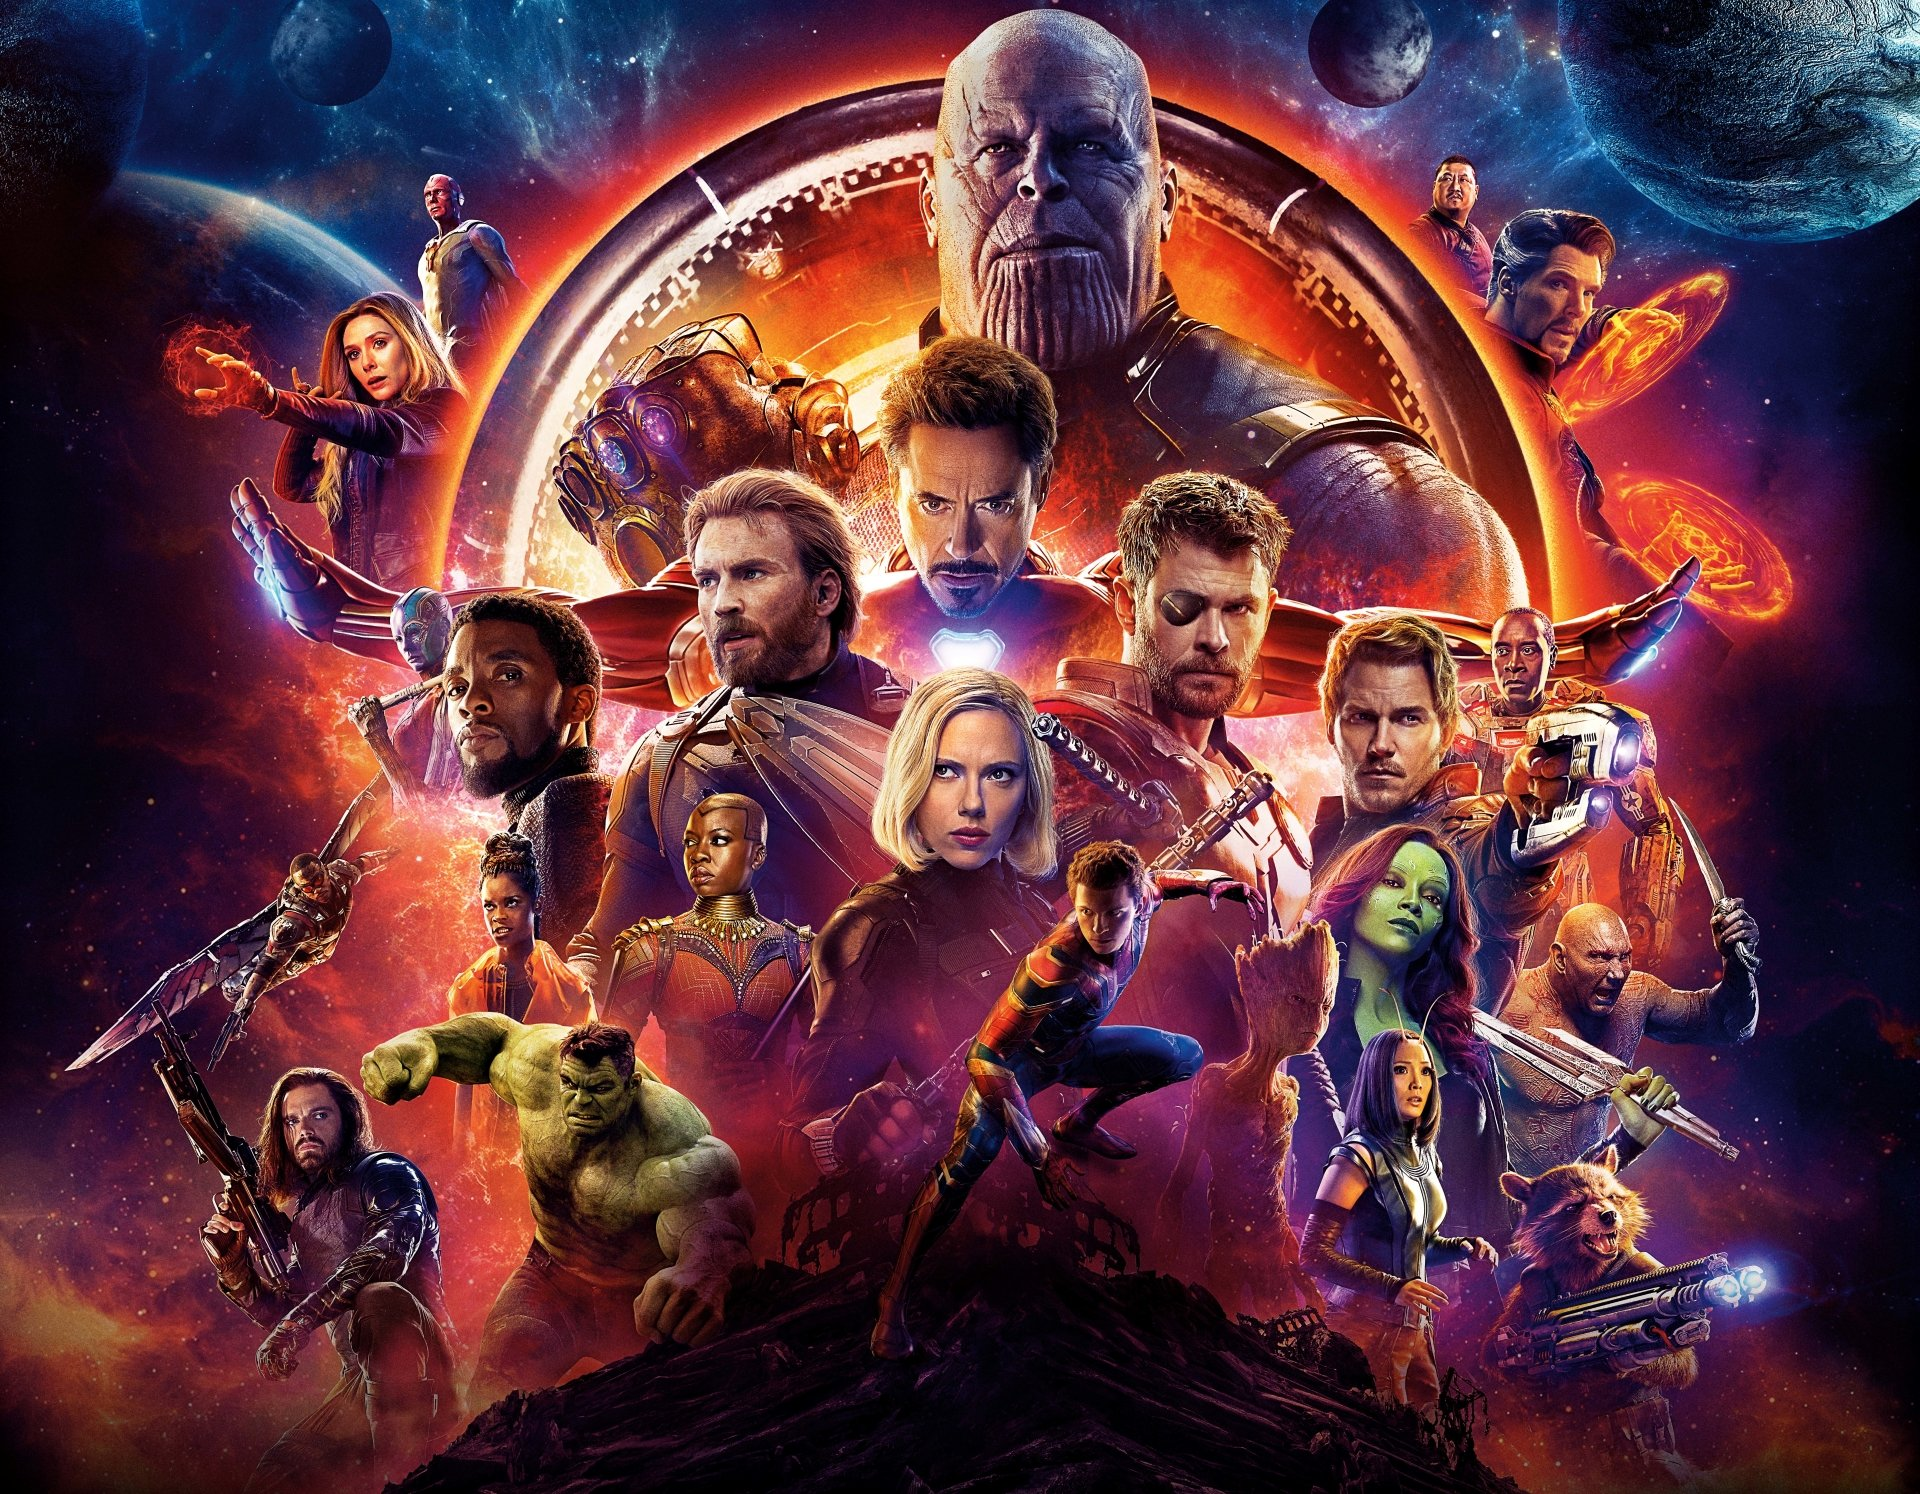 avengers: infinity war wallpaper 8k ultra hd wallpaper | background